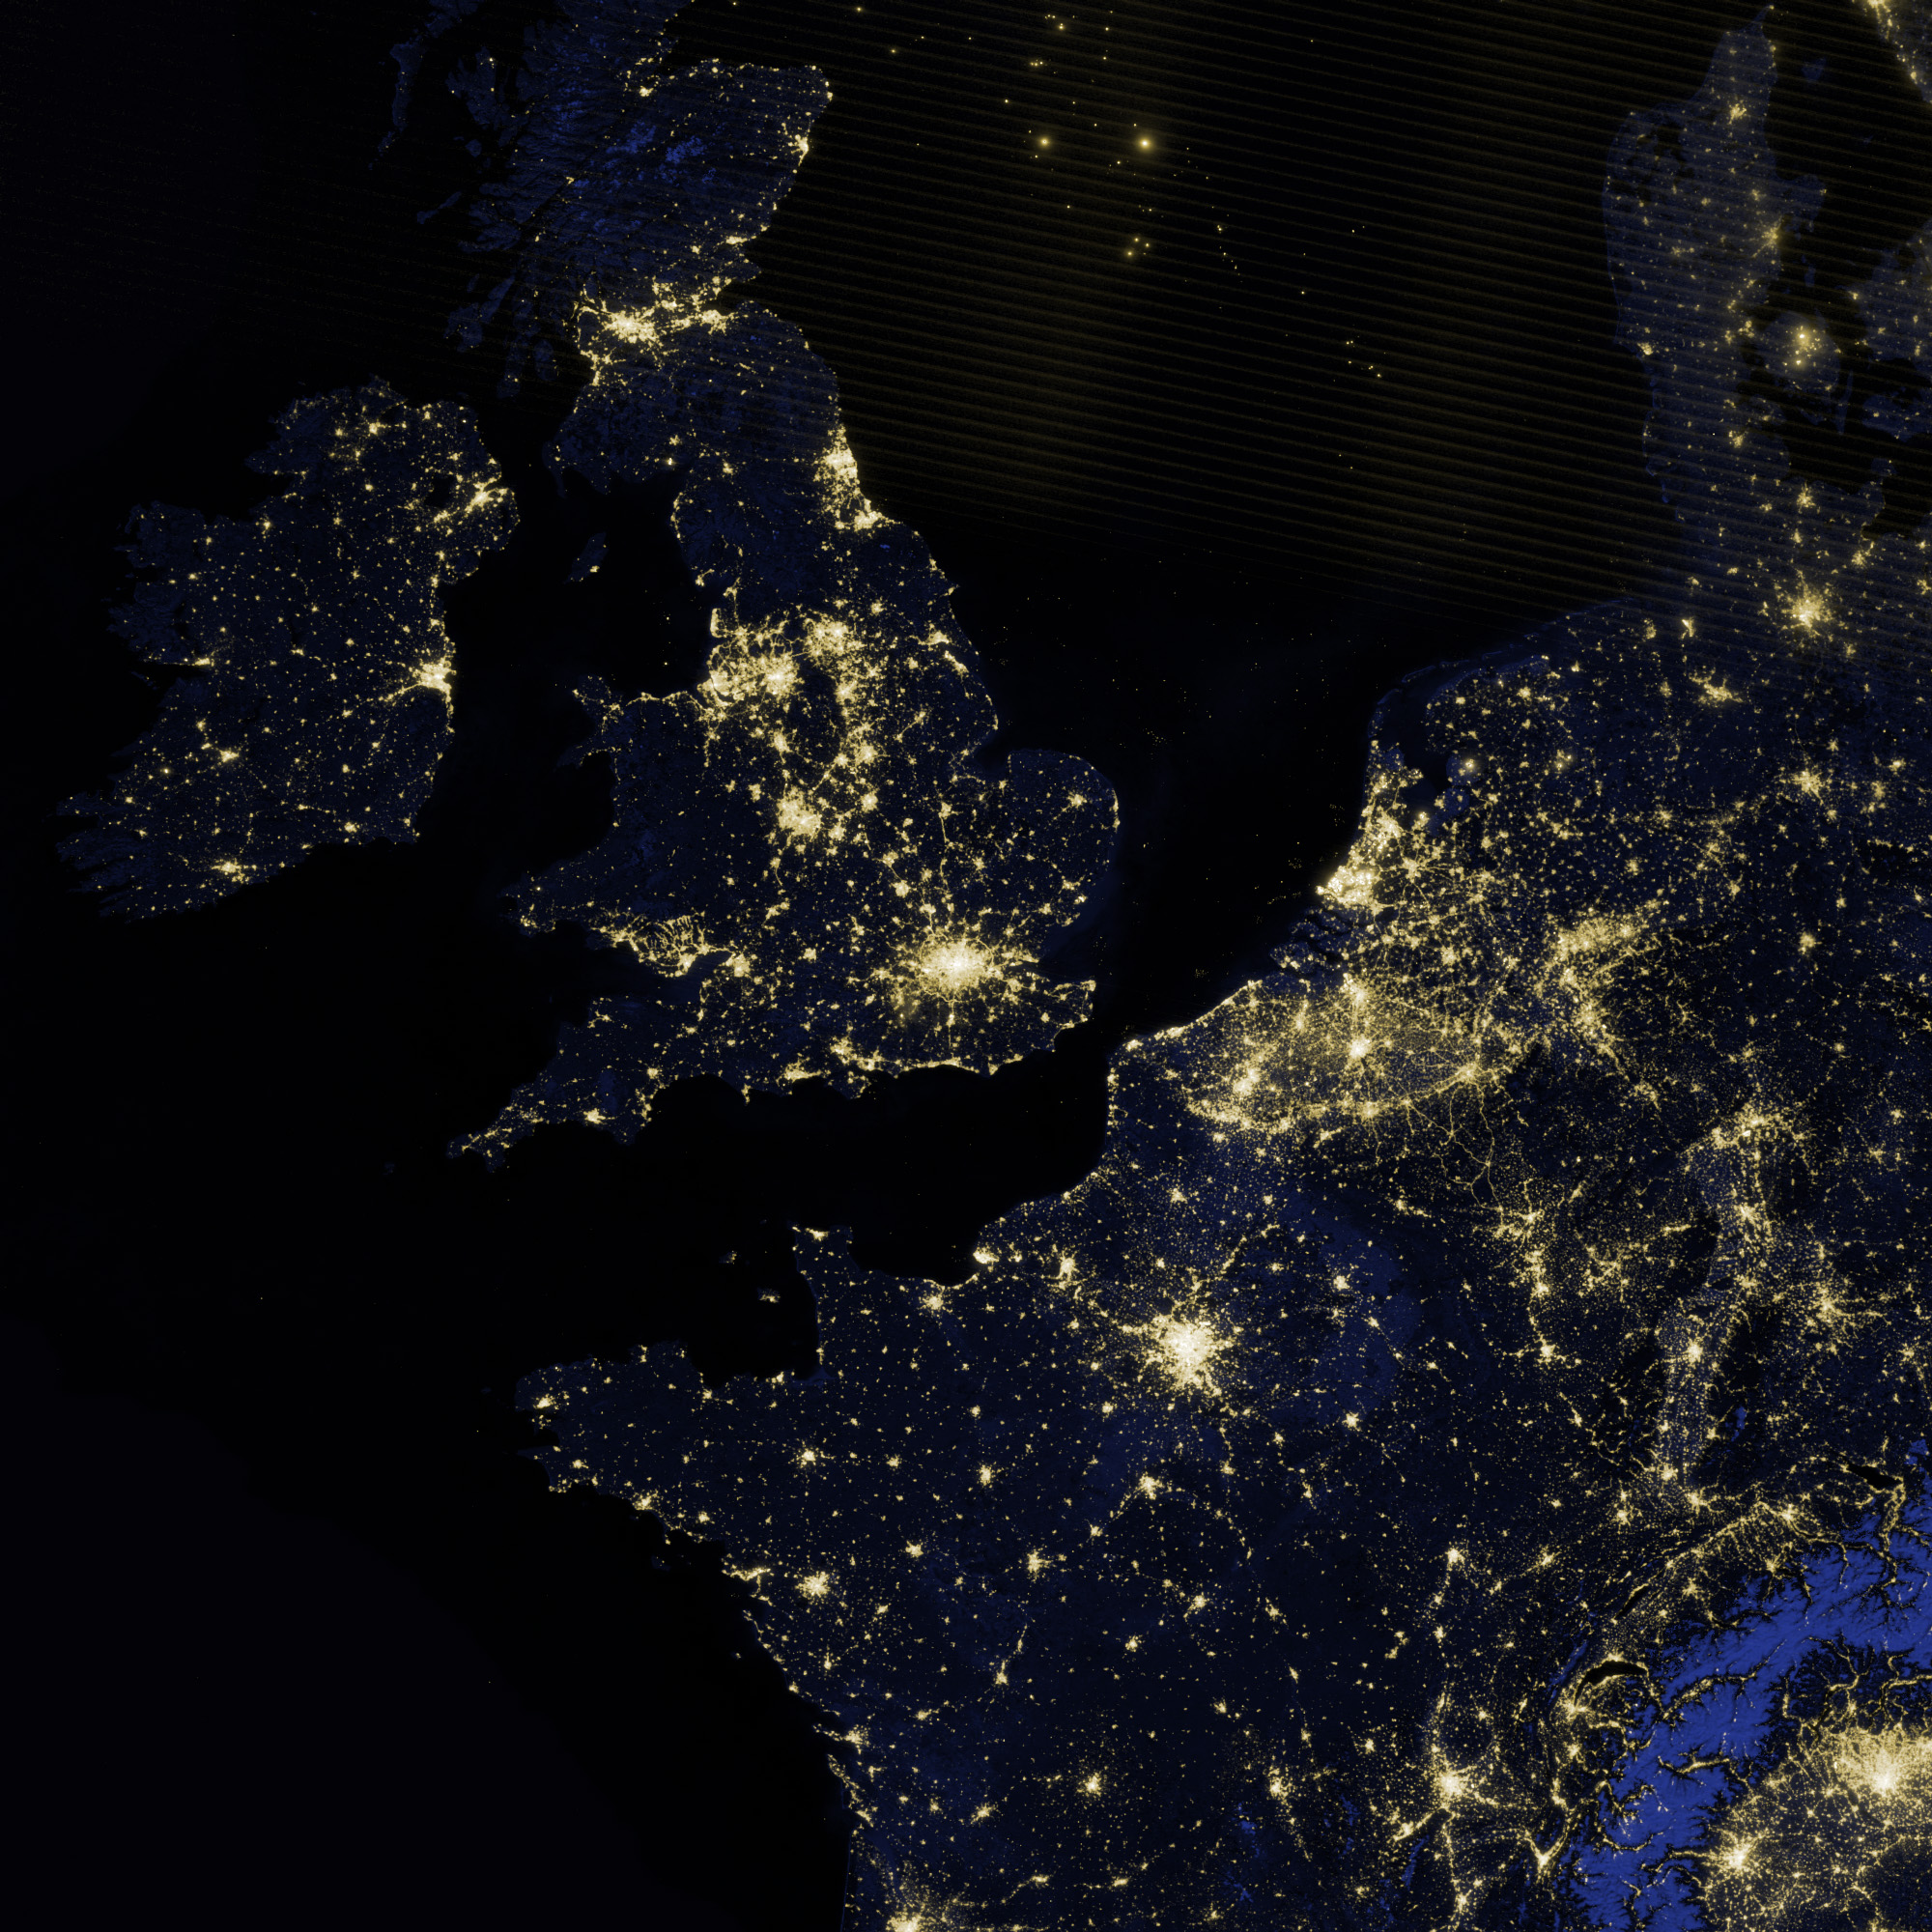 Today's Image of the Day comes from the NASA Earth Observatory and features a look at the bright night lights of London.